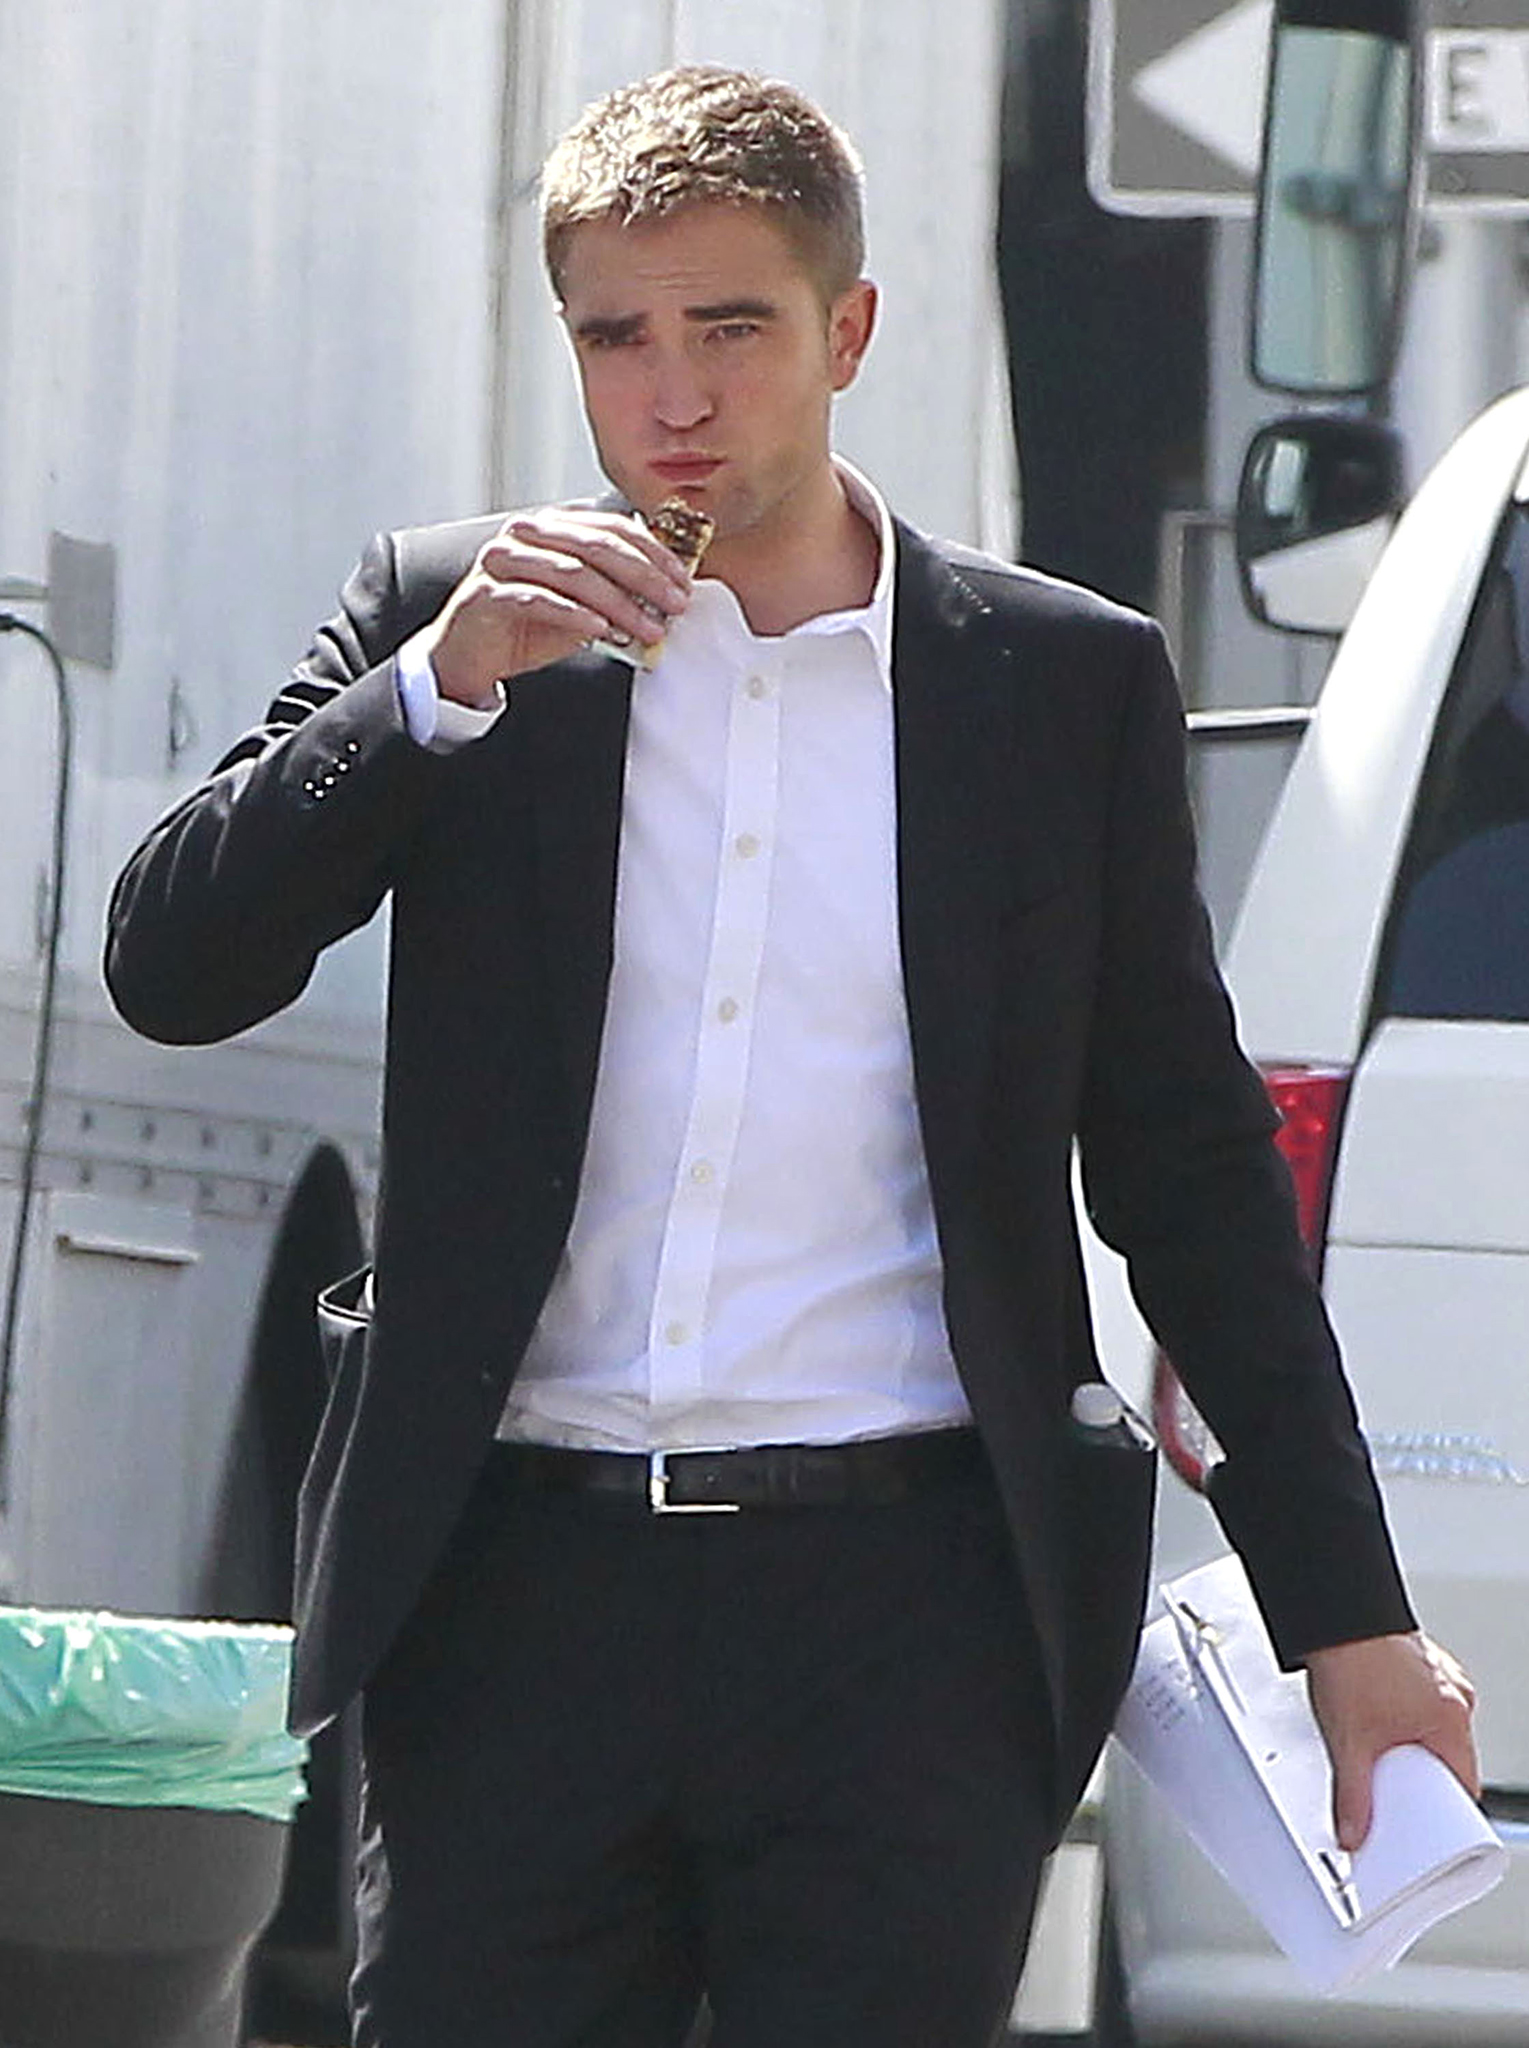 Robert Pattinson on set of 'Maps to the Stars' (FameFlynet)